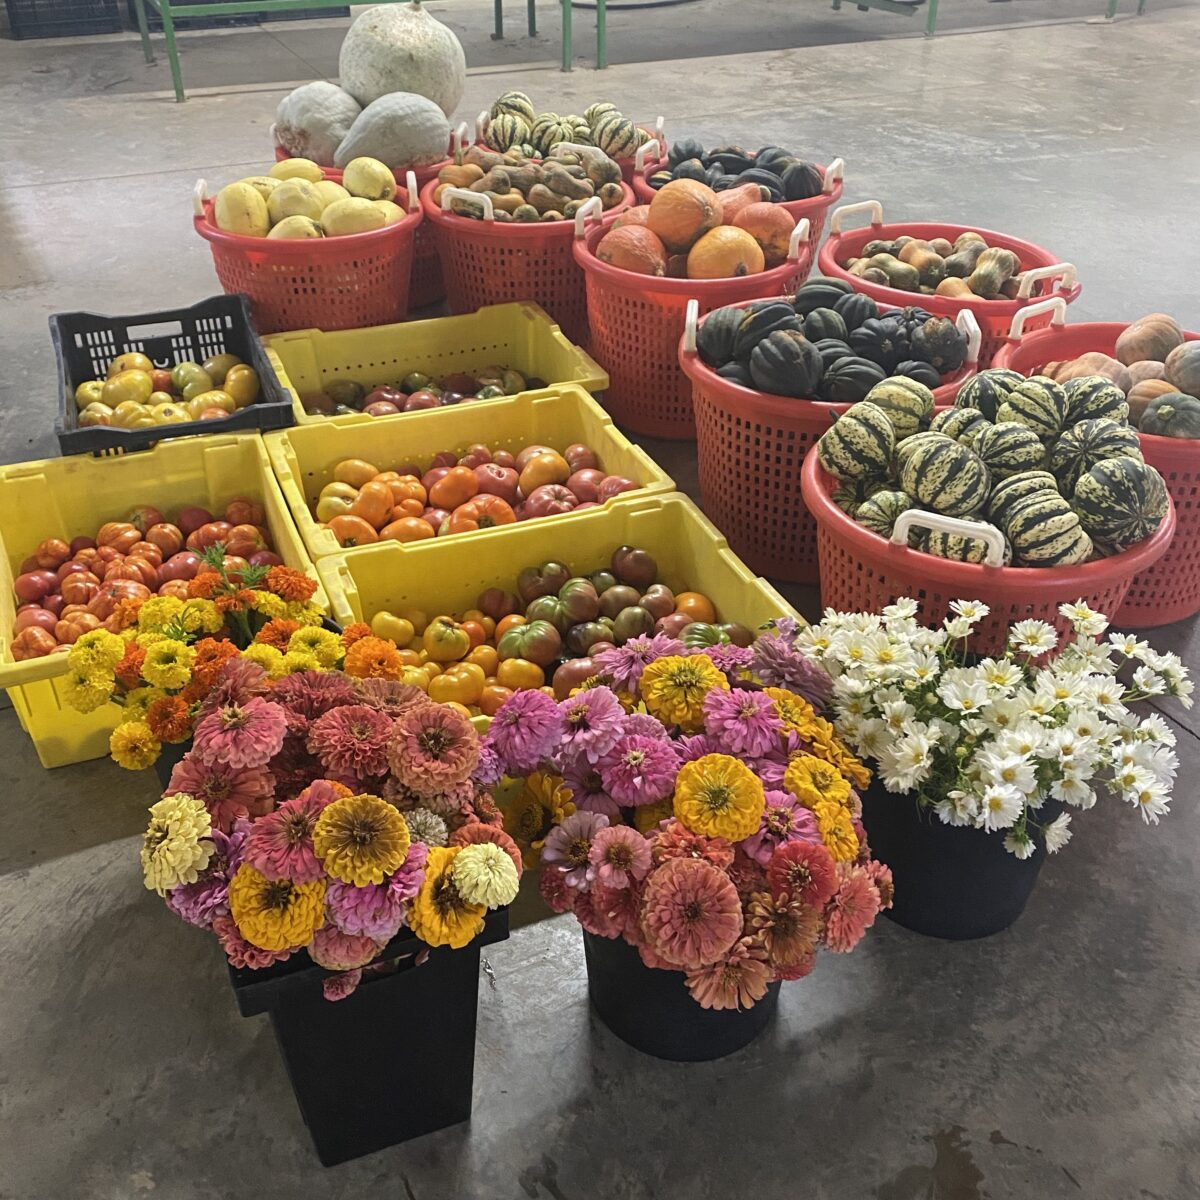 Flowers and Vegetables - Foodie Travel USA